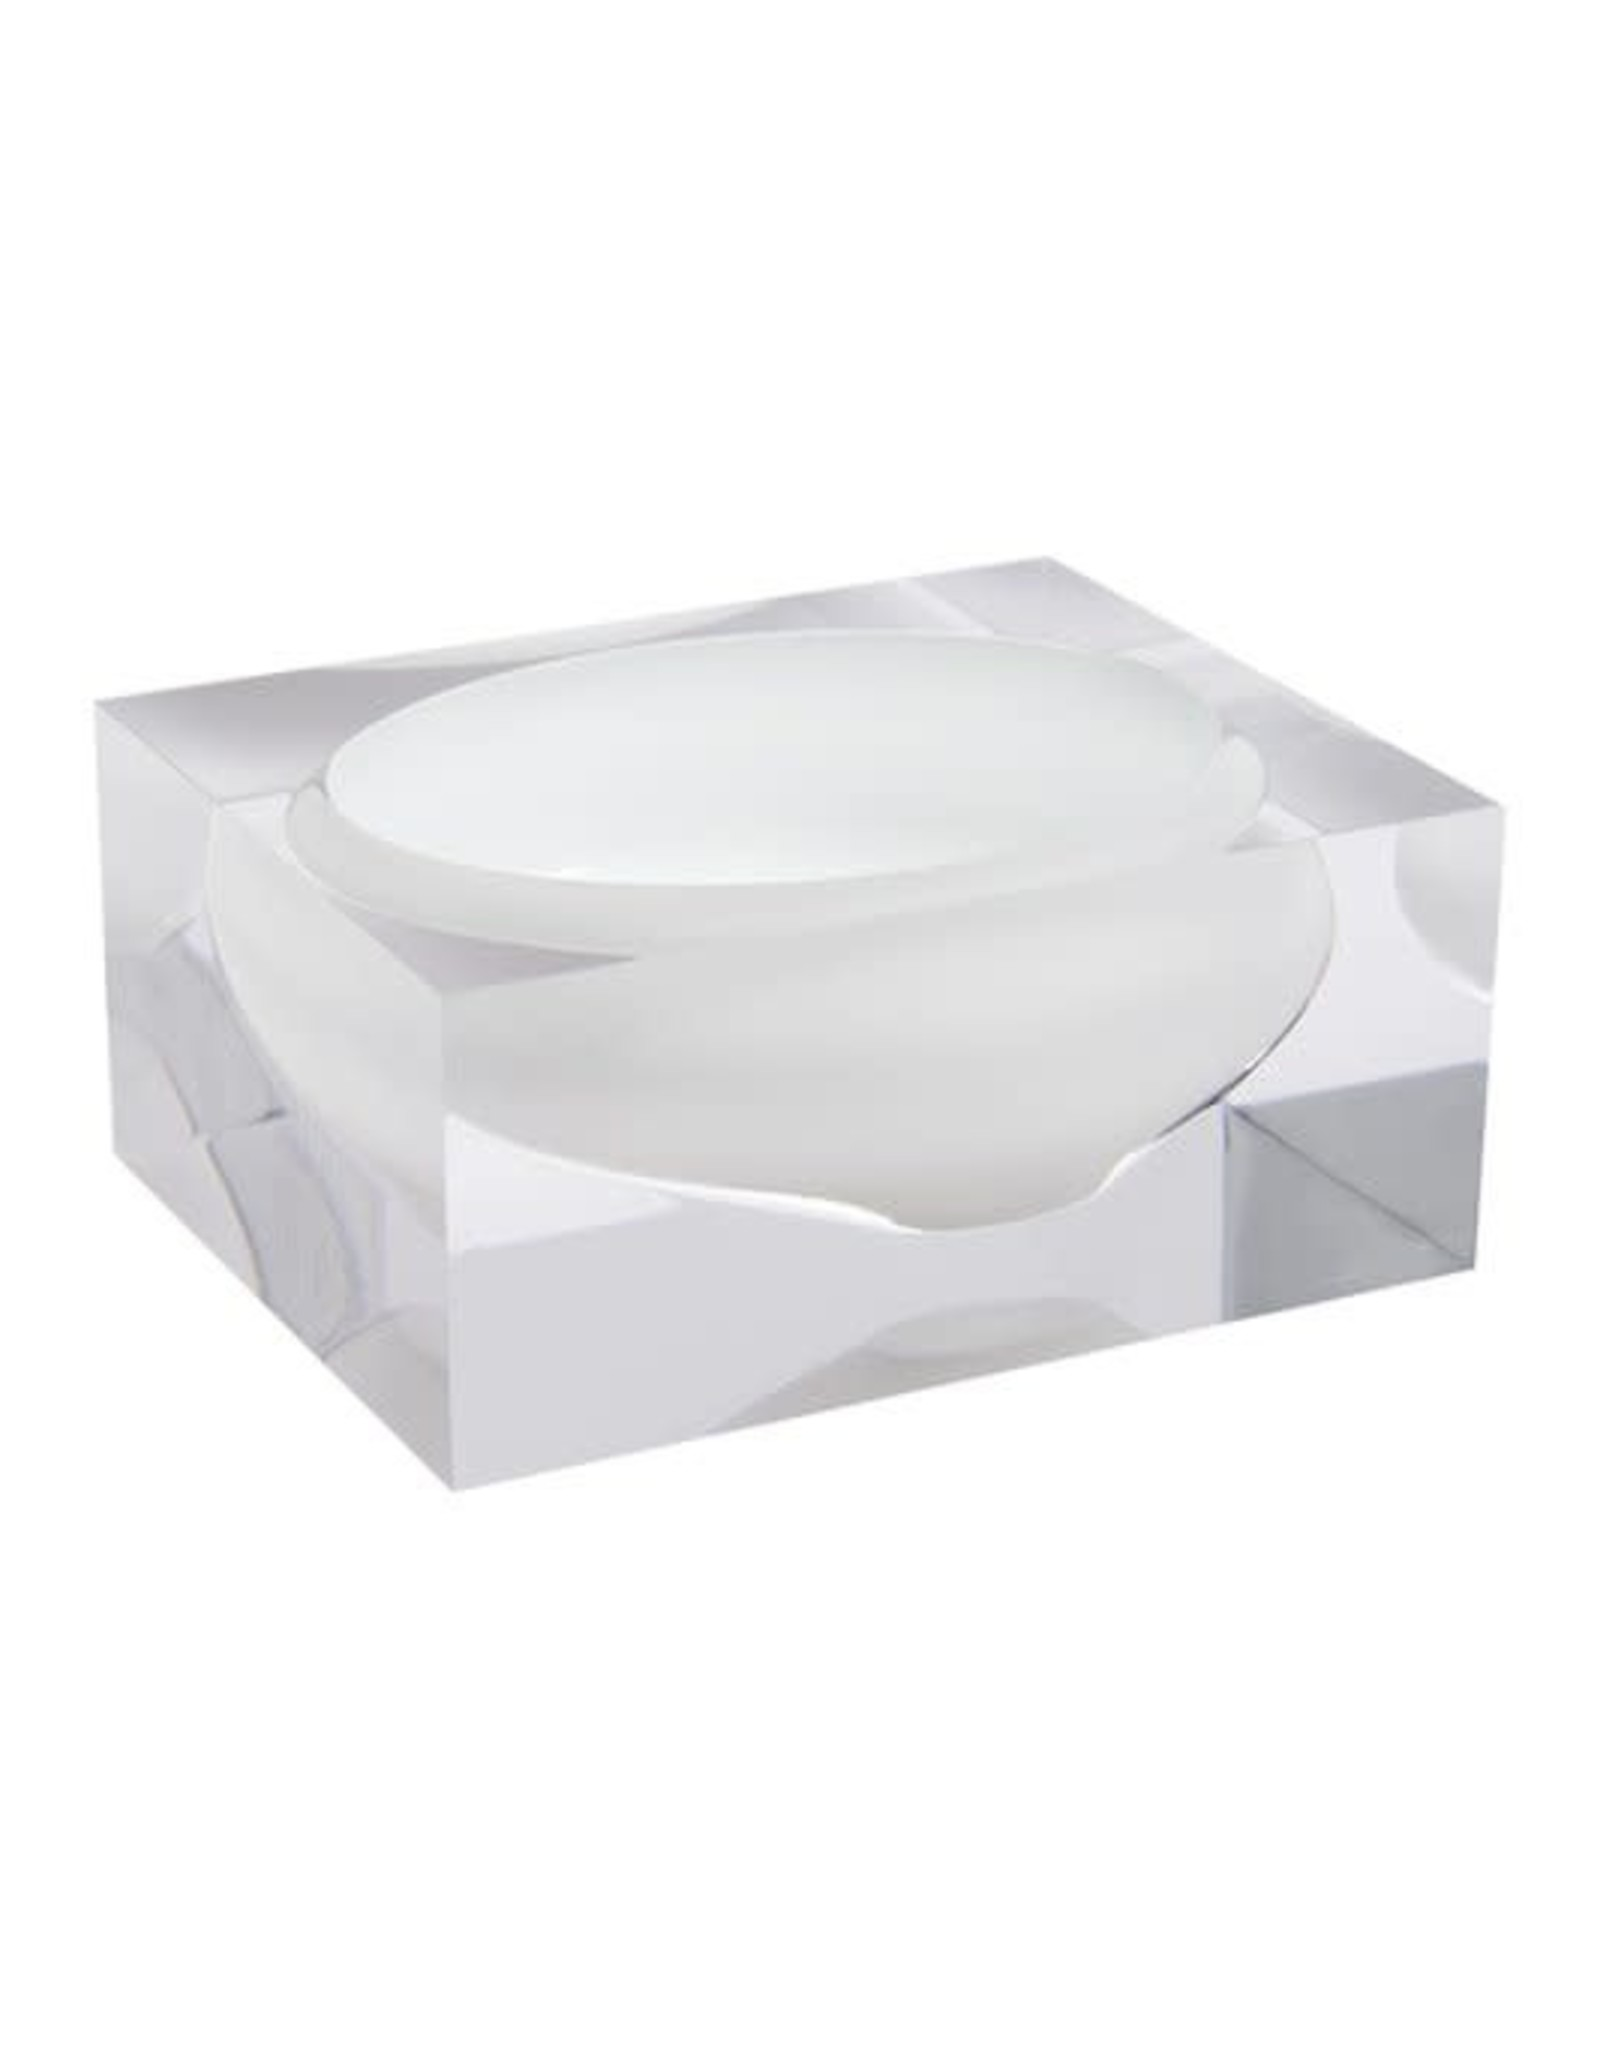 JR William Acrylic Block Bowl White by JR Williams